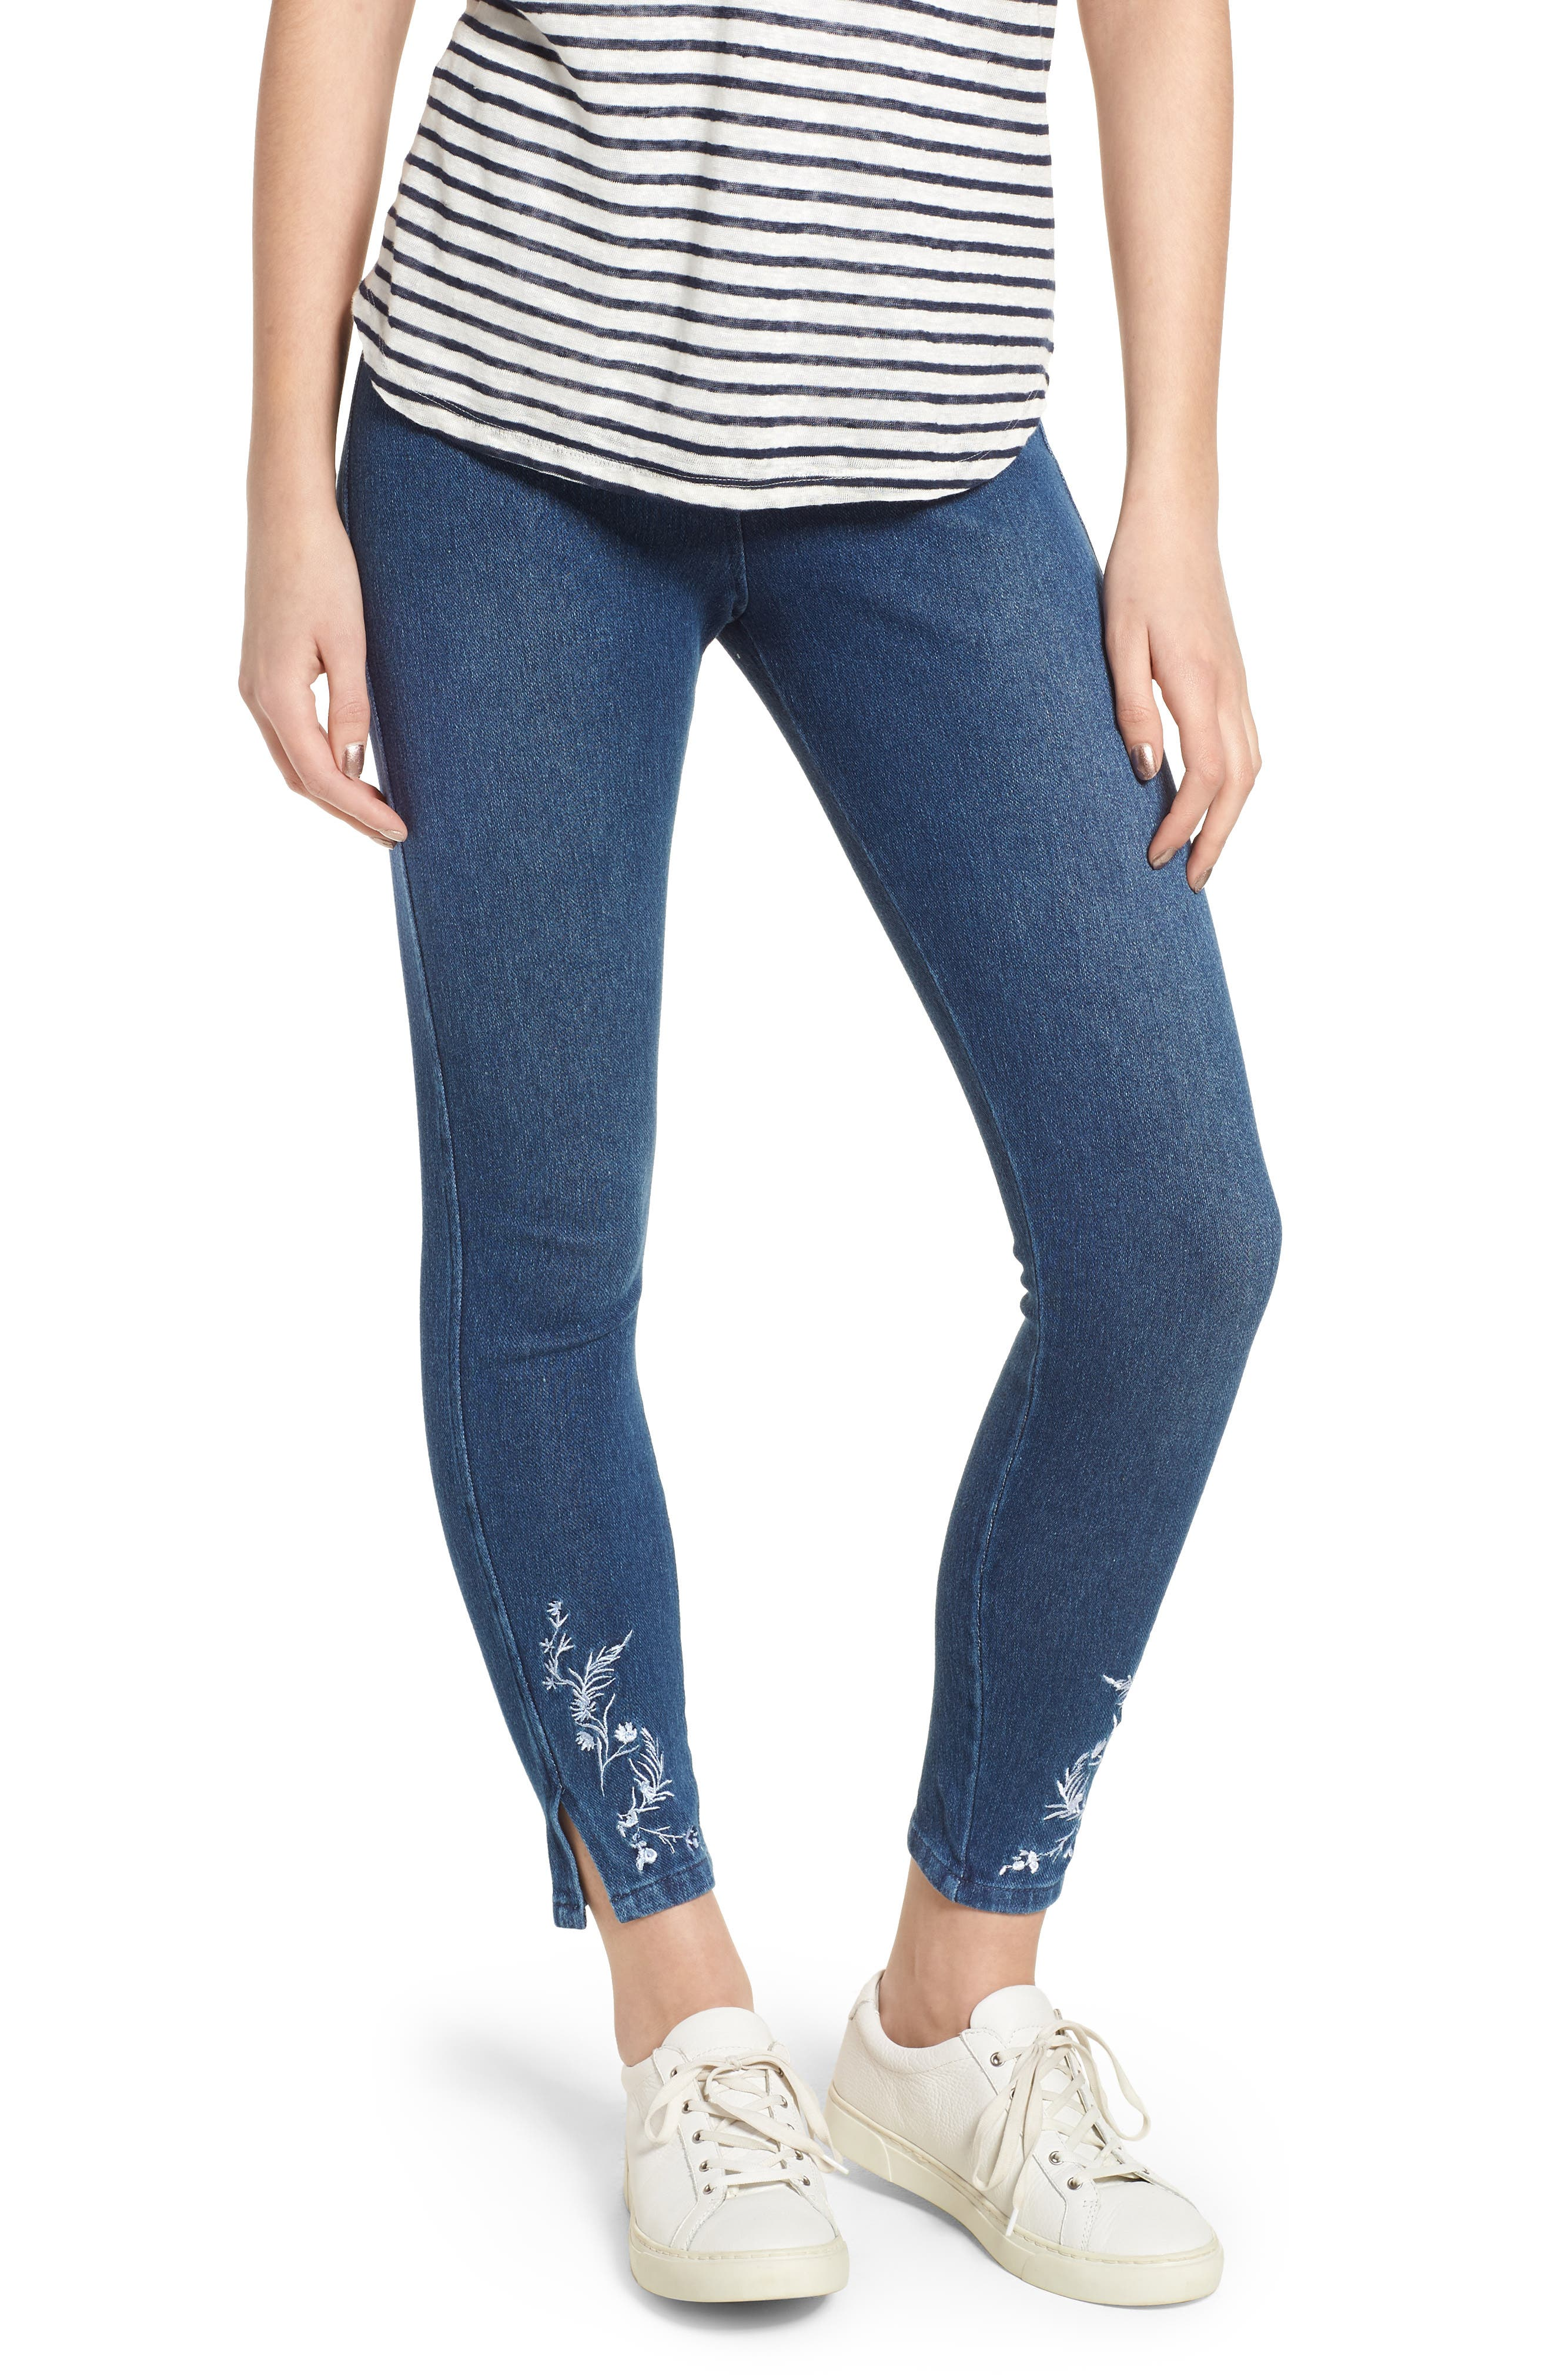 Cooper High Waist Denim Leggings,                         Main,                         color, 400